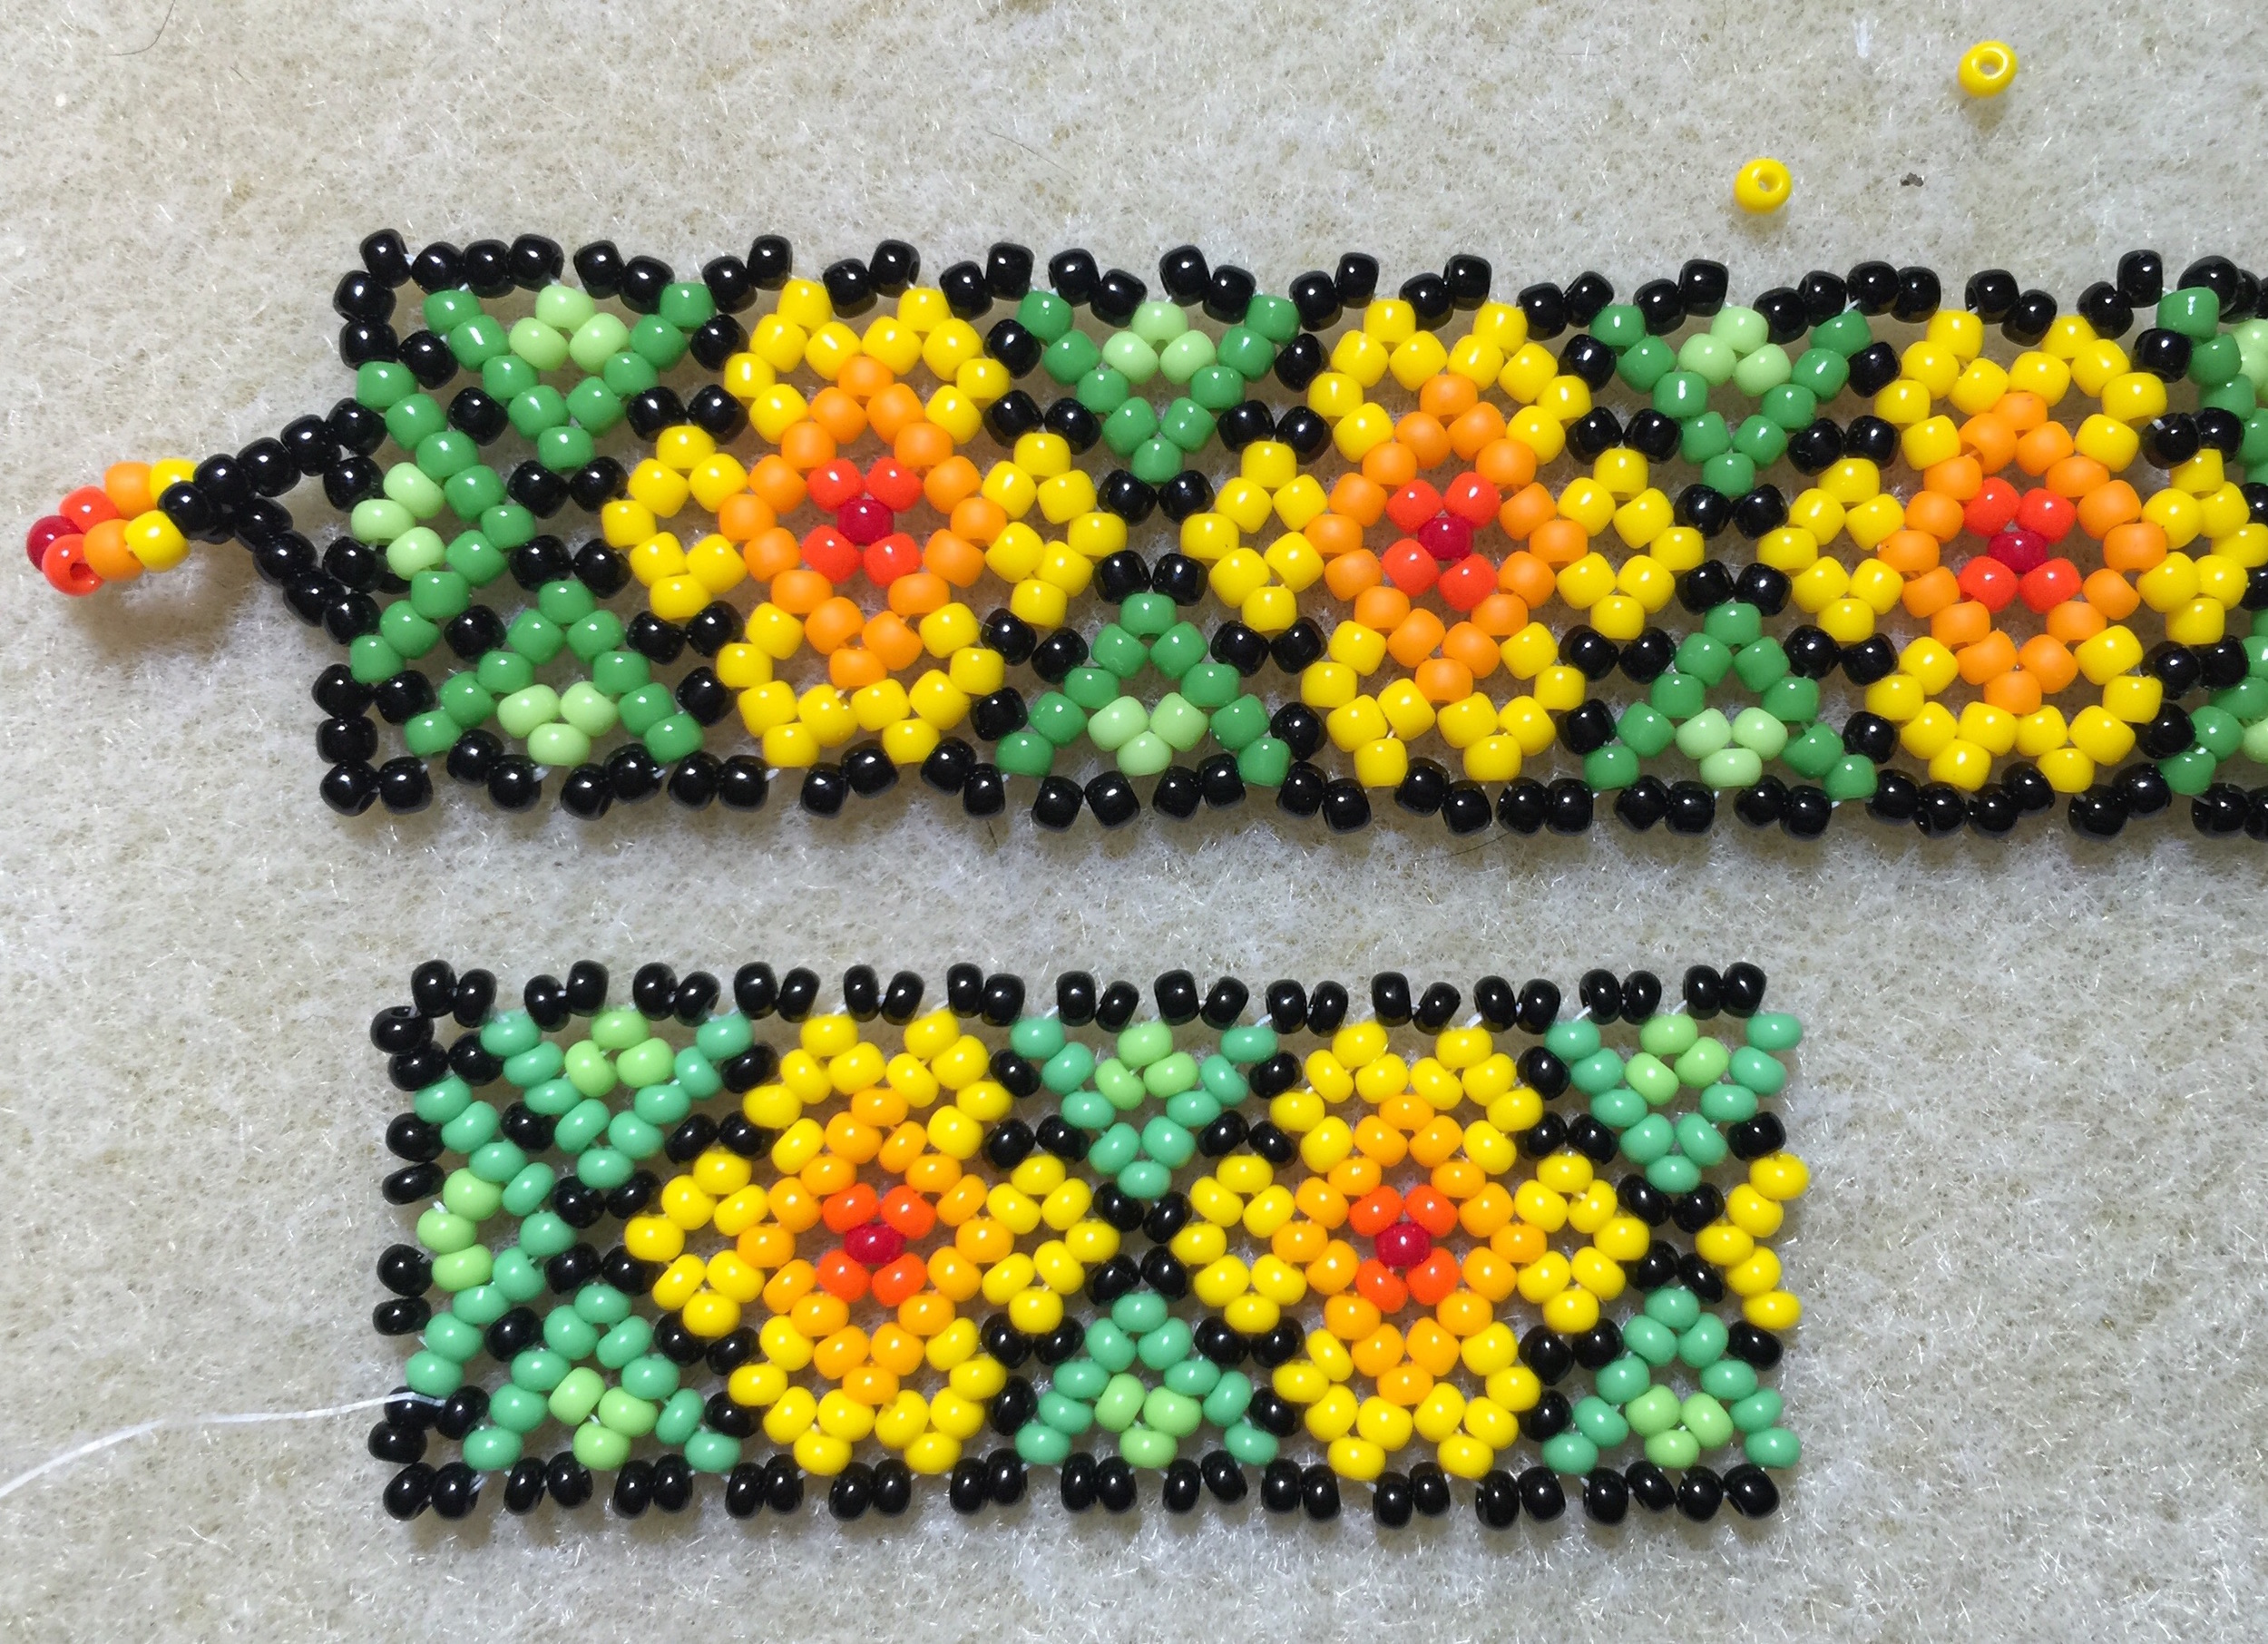 Top: Mixed beads from local bead shop, 11/0 size Bottom: Preciosa 11/0 Rocaille seed beads—PERFECT!